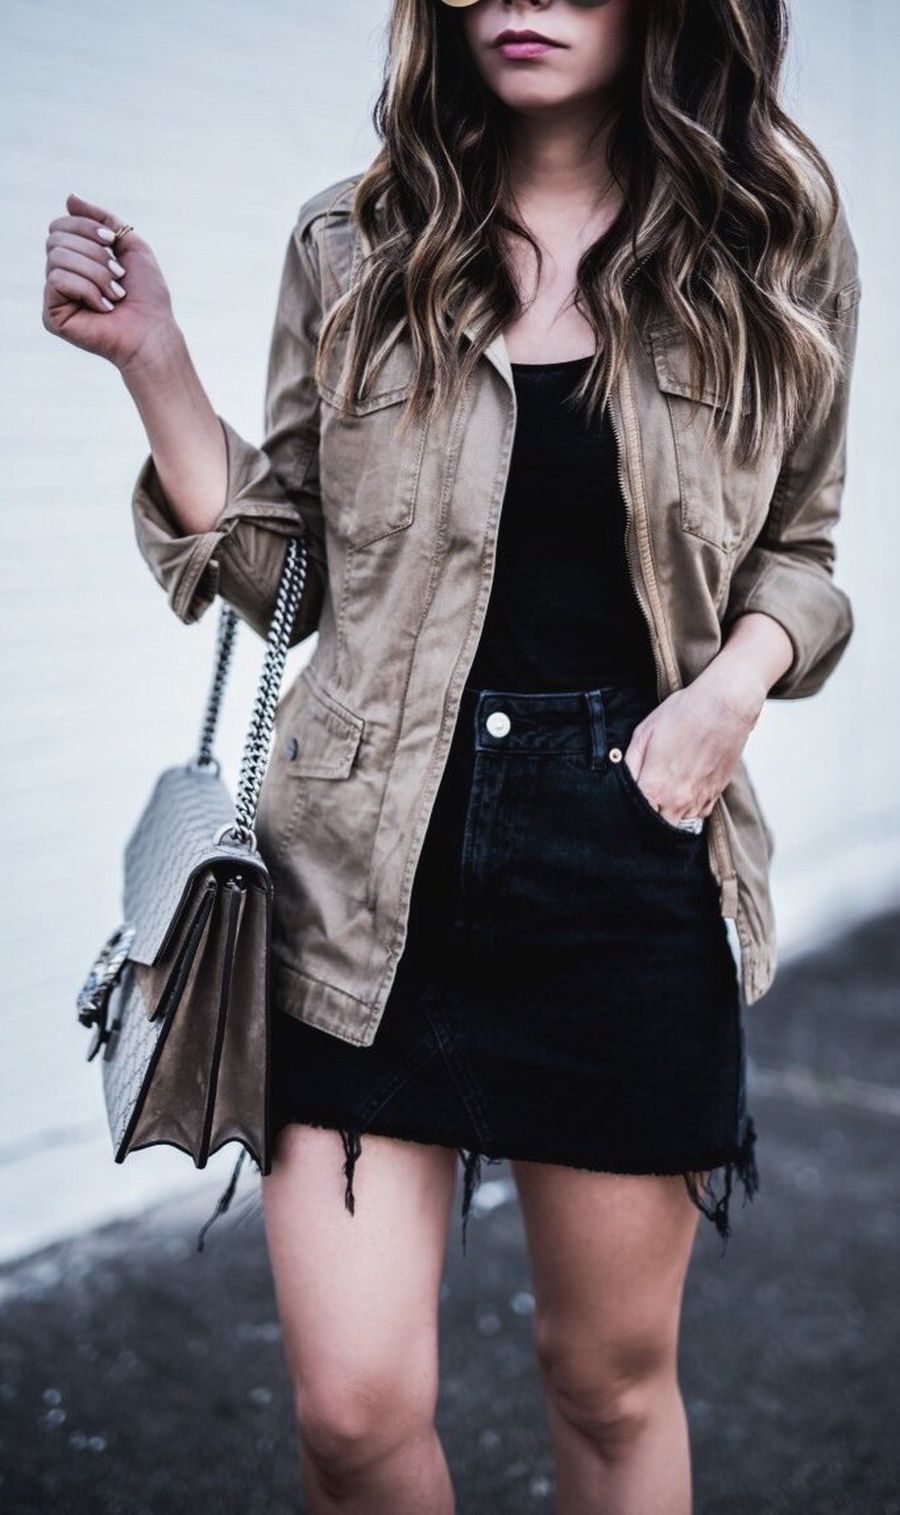 Skirt trends ideas for winter outfits this year 44